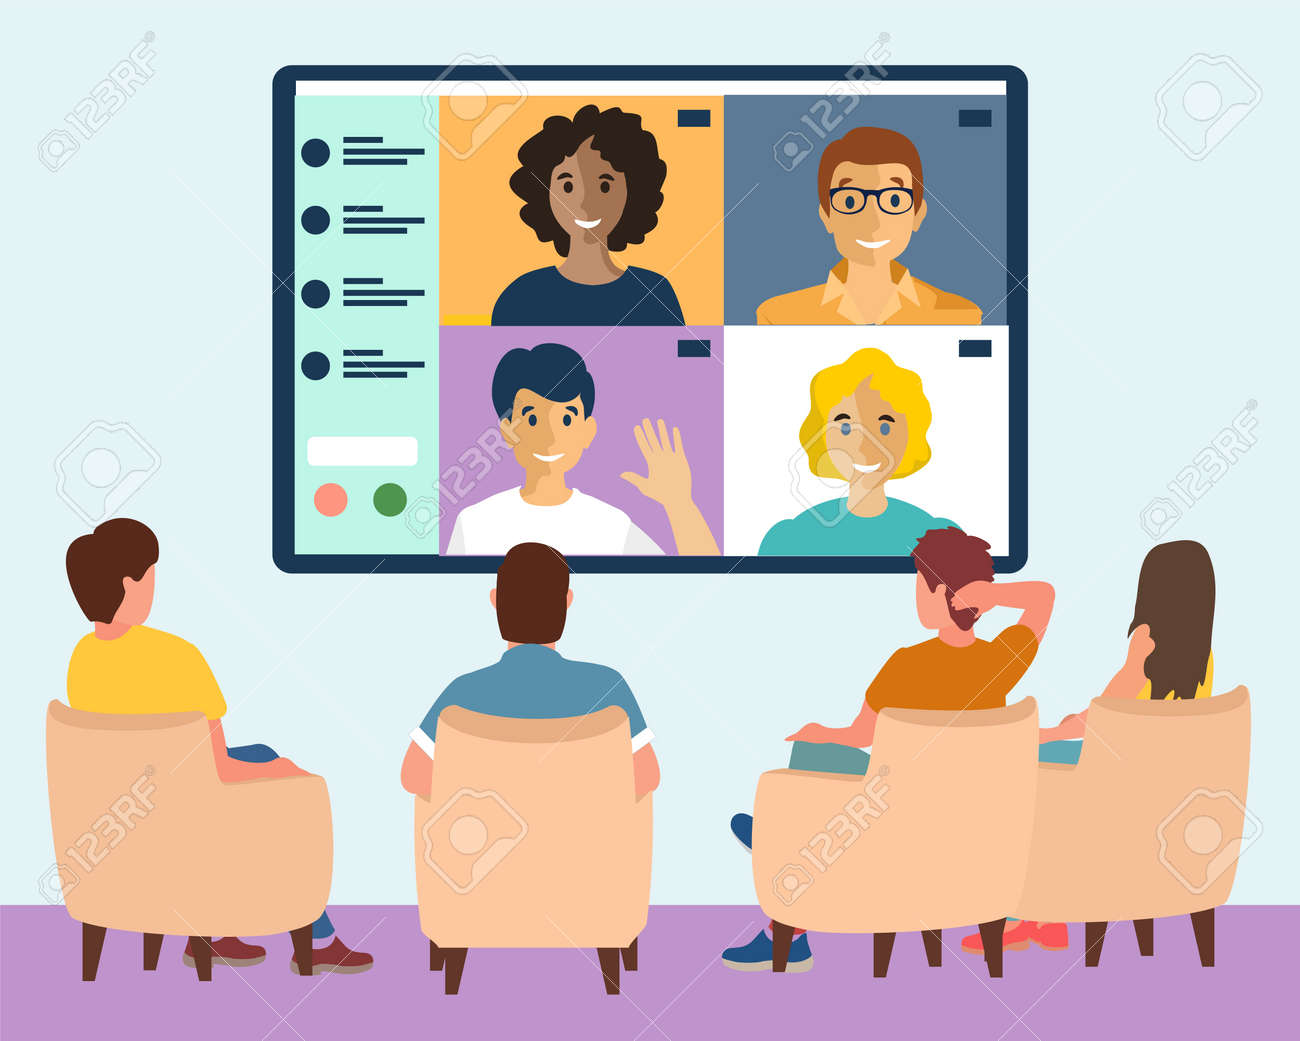 Online webinar in big city concept vector illustration. Men and Women sit in conference room and look at big screen. Internet conference, people chatting on big digital screen. Flat design vector - 169650579